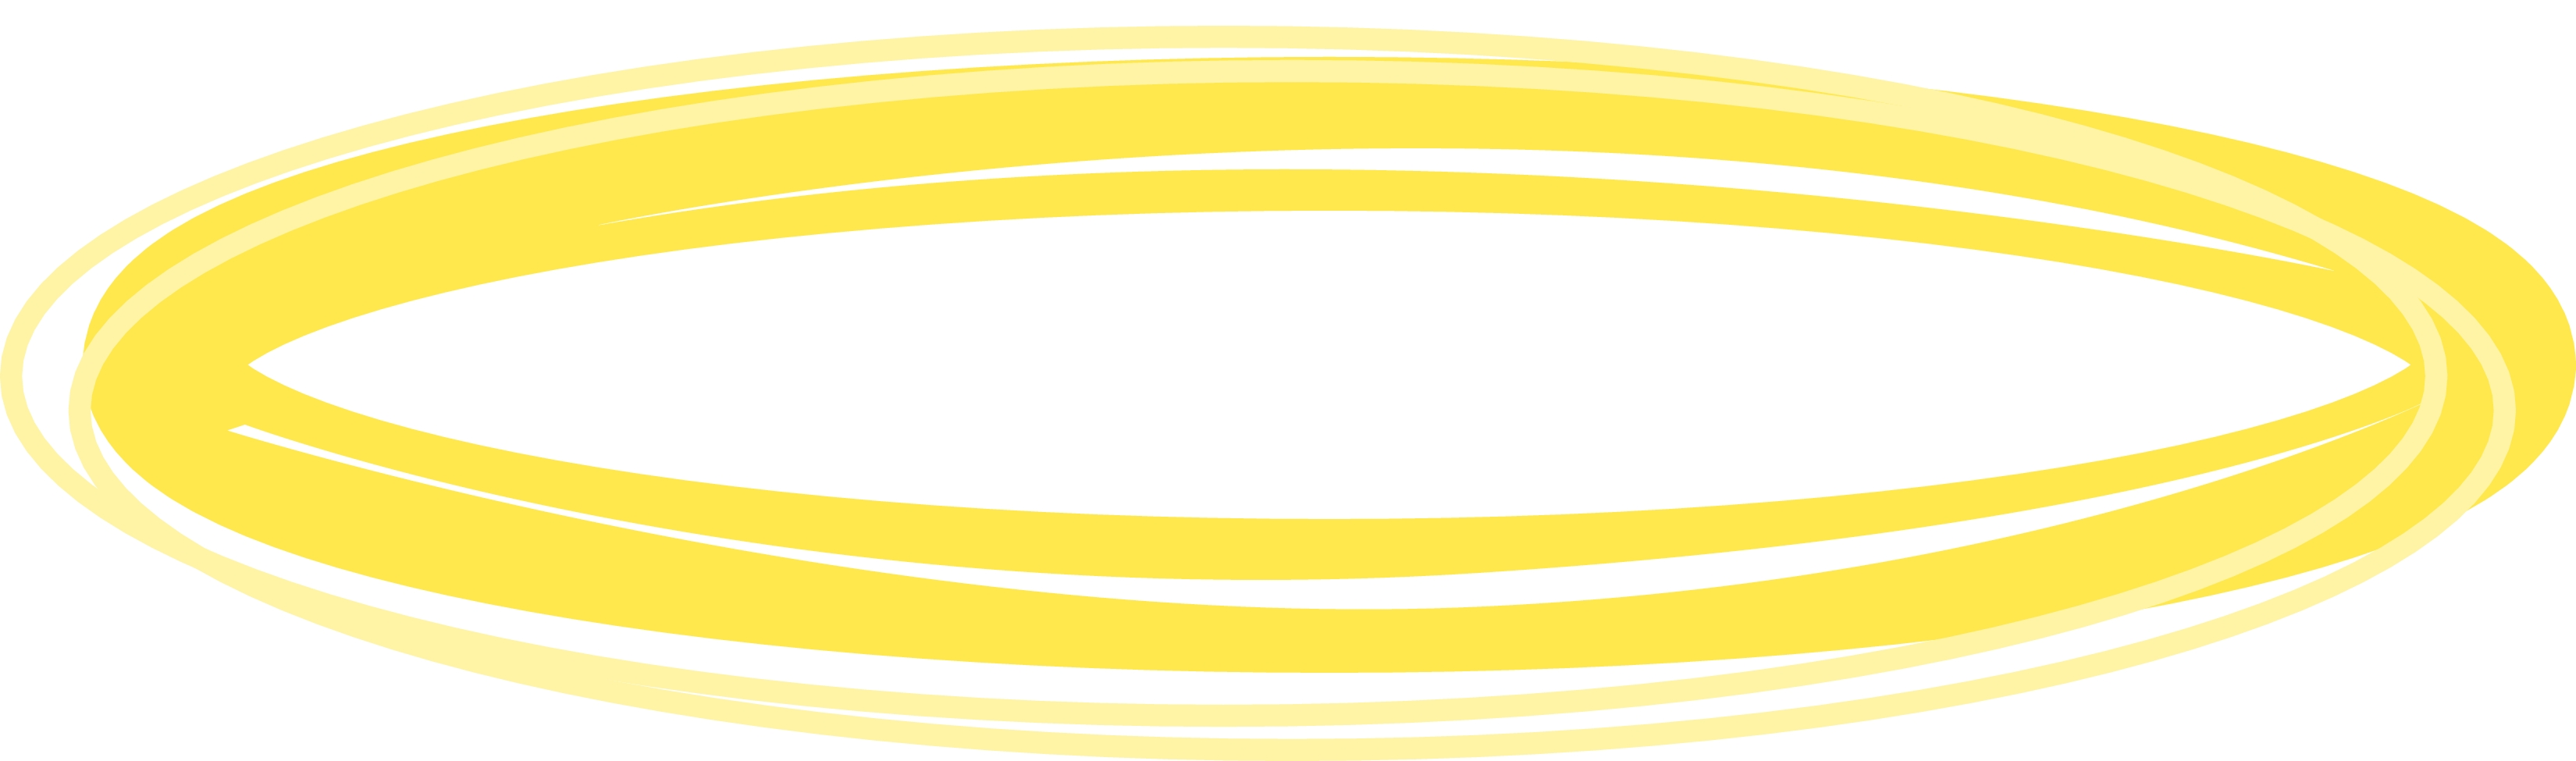 banner free stock Free cliparts download clip. Halo clipart